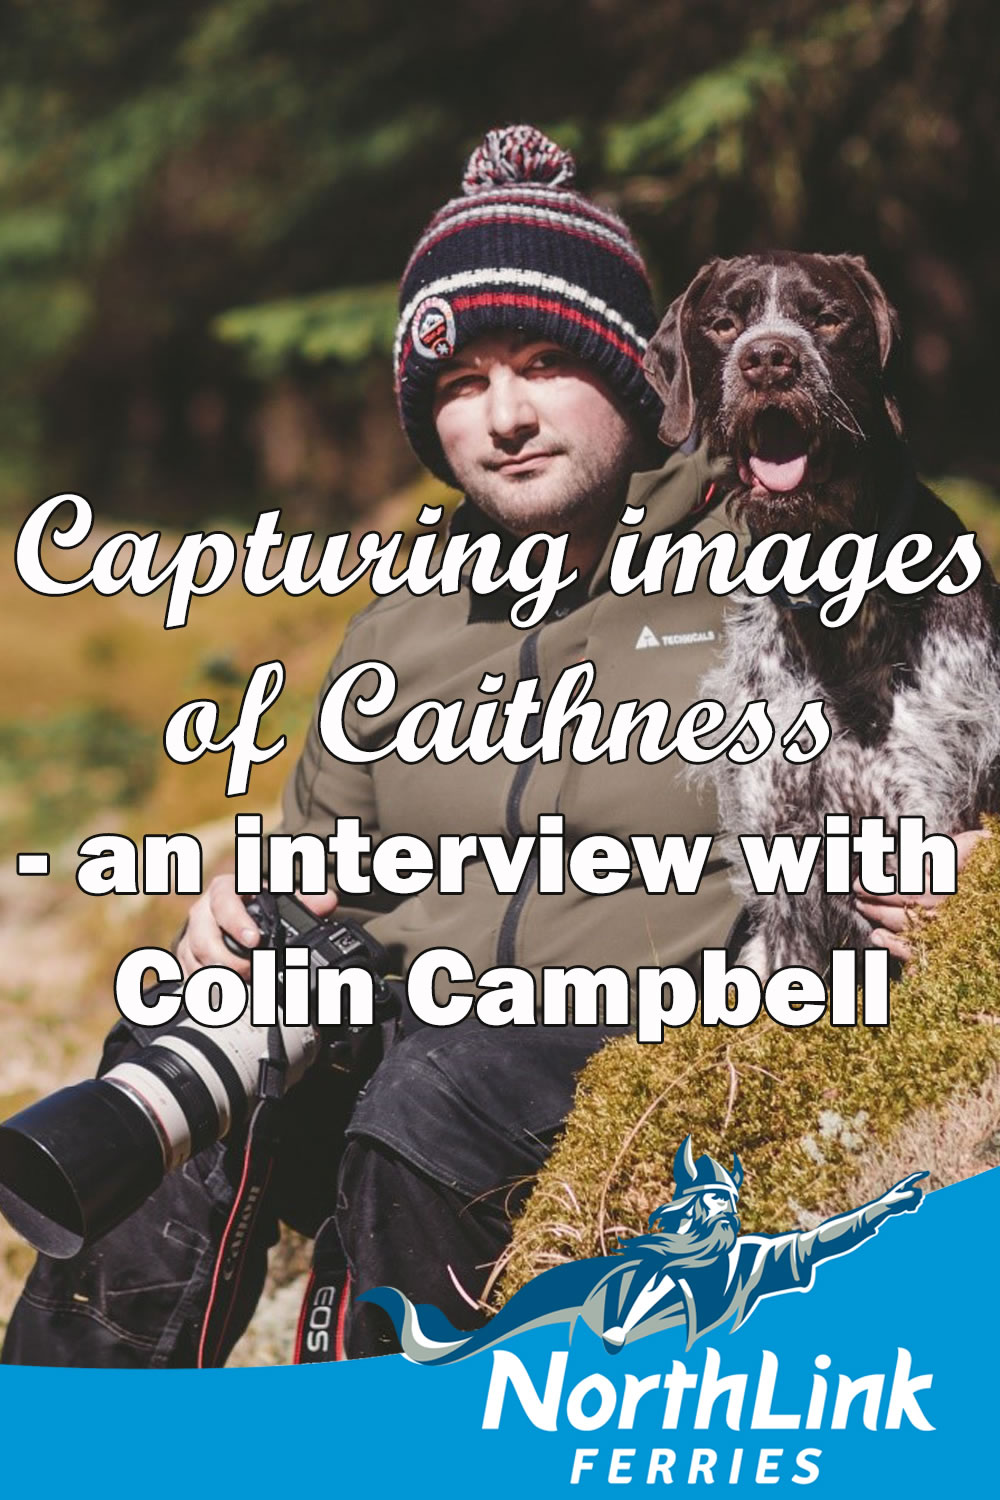 Capturing images of Caithness - an interview with Colin Campbell